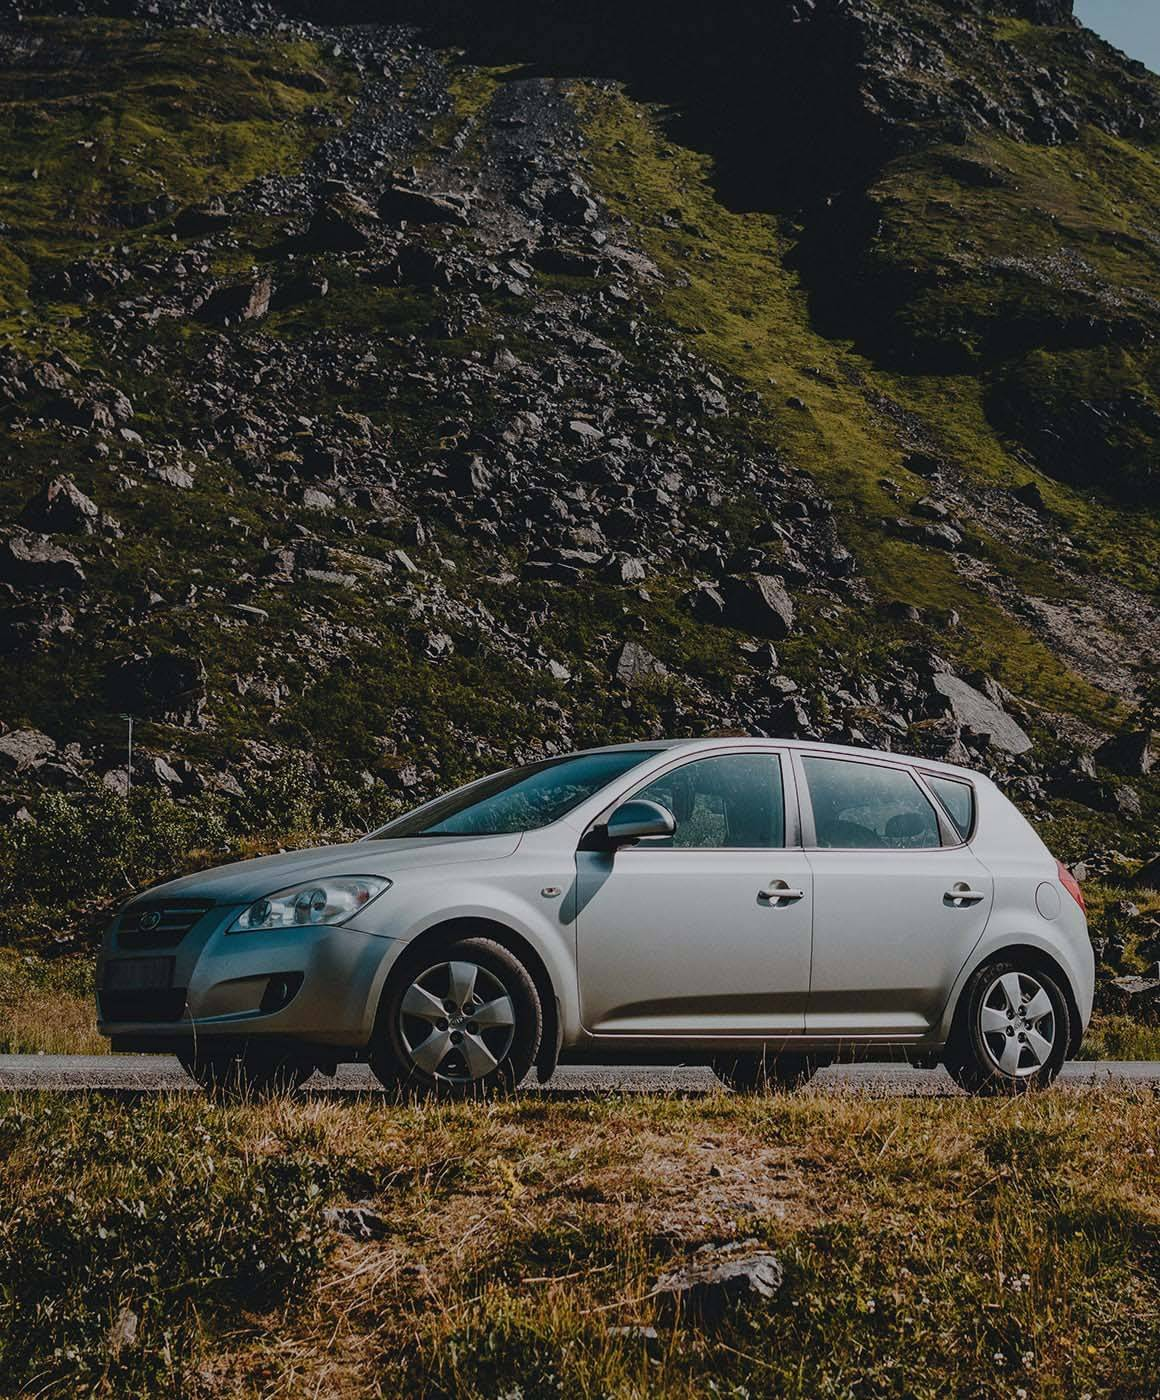 Get the best car finance for your Kia today